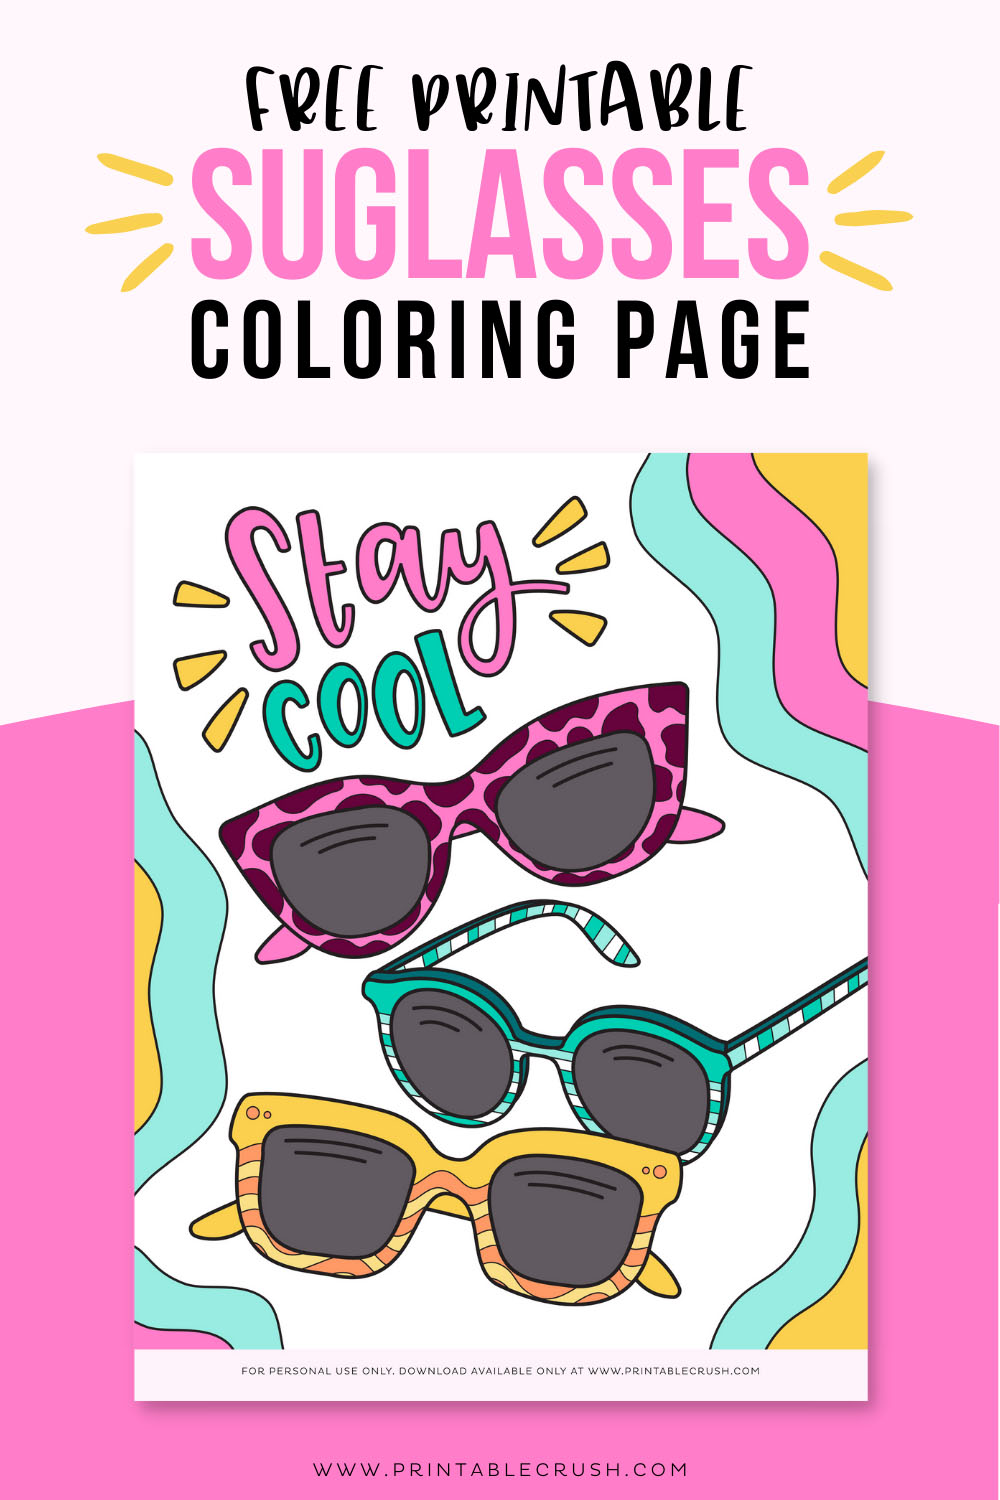 Free Printable Sunglasses Coloring Page - Free Summer Coloring Page - Printable Crush